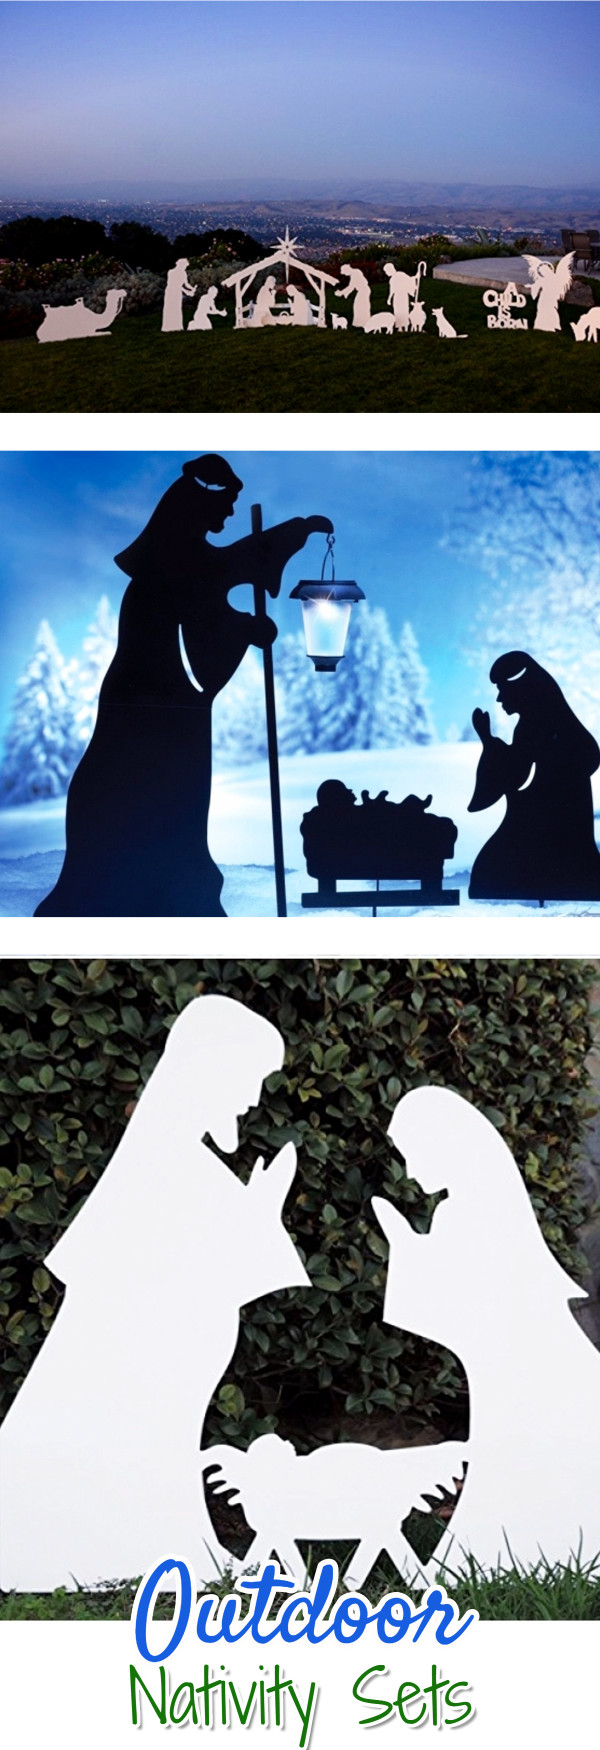 Outdoor Nativity Scene Ideas for Your yard.  Decorate outdoors this Christmas with one of these gorgeous Outdoor Nativity Scenes